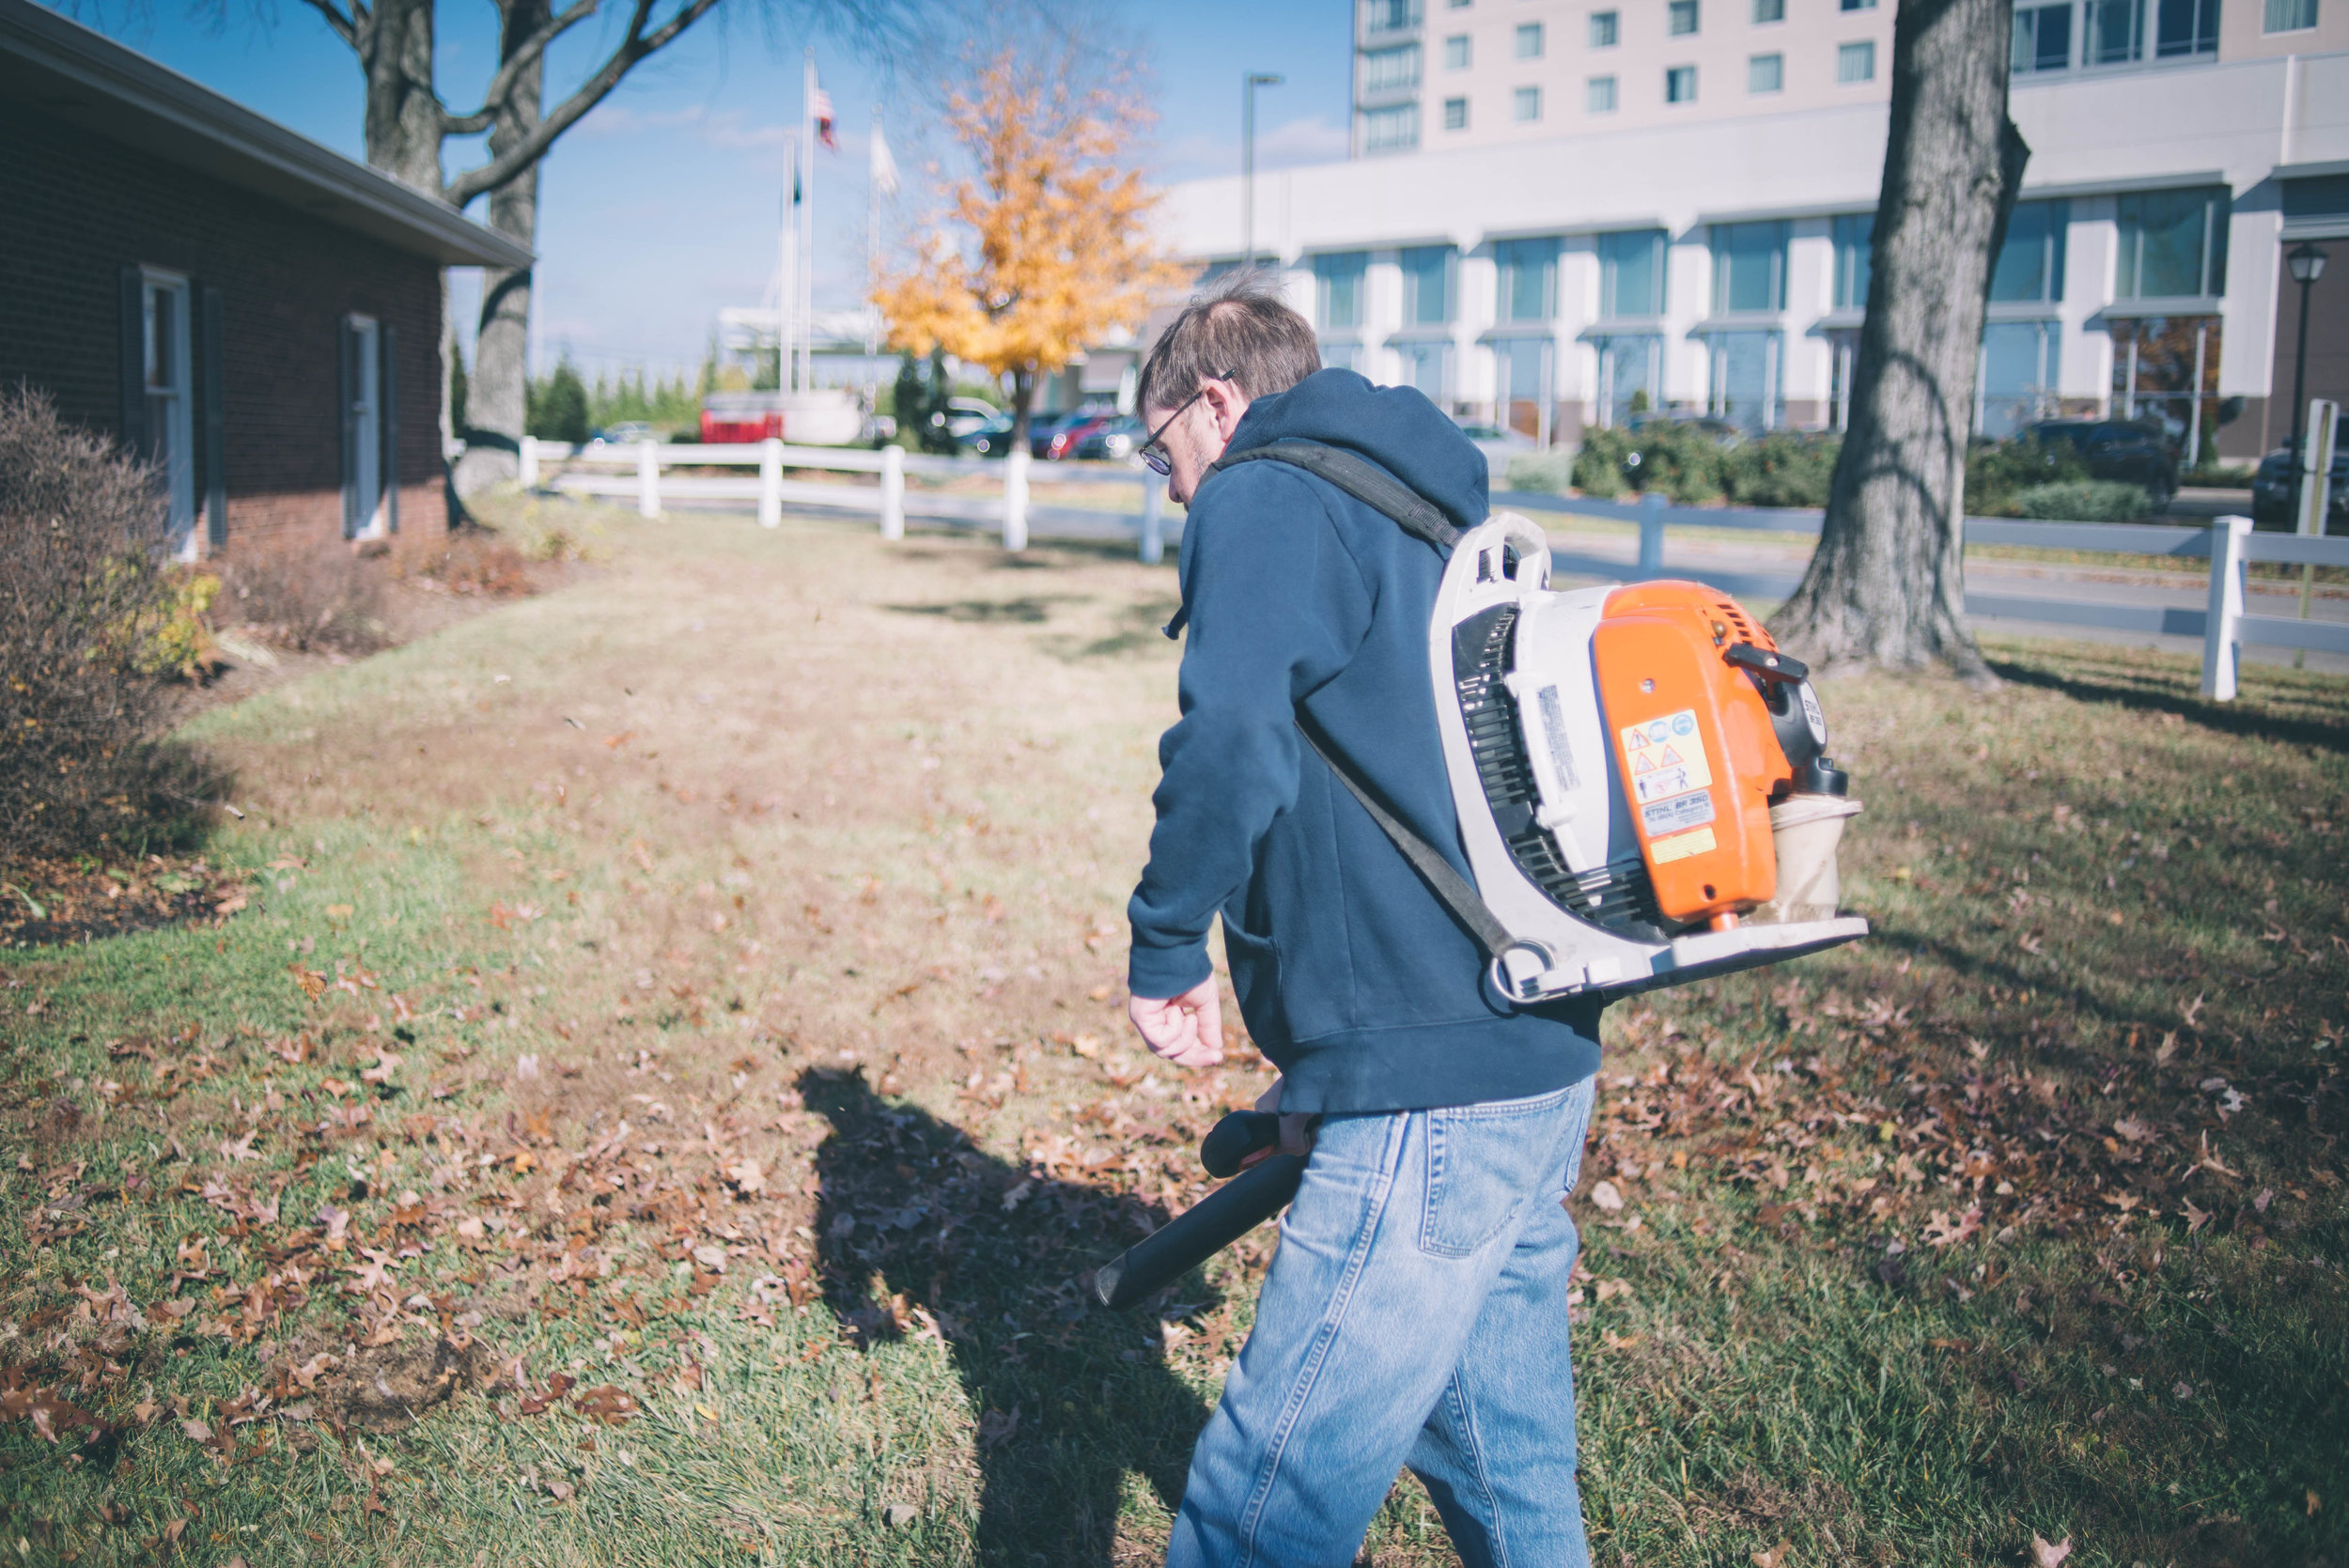 Image of an individual using a leaf blower with their back to the camera. They are outside surround by fall leaves.